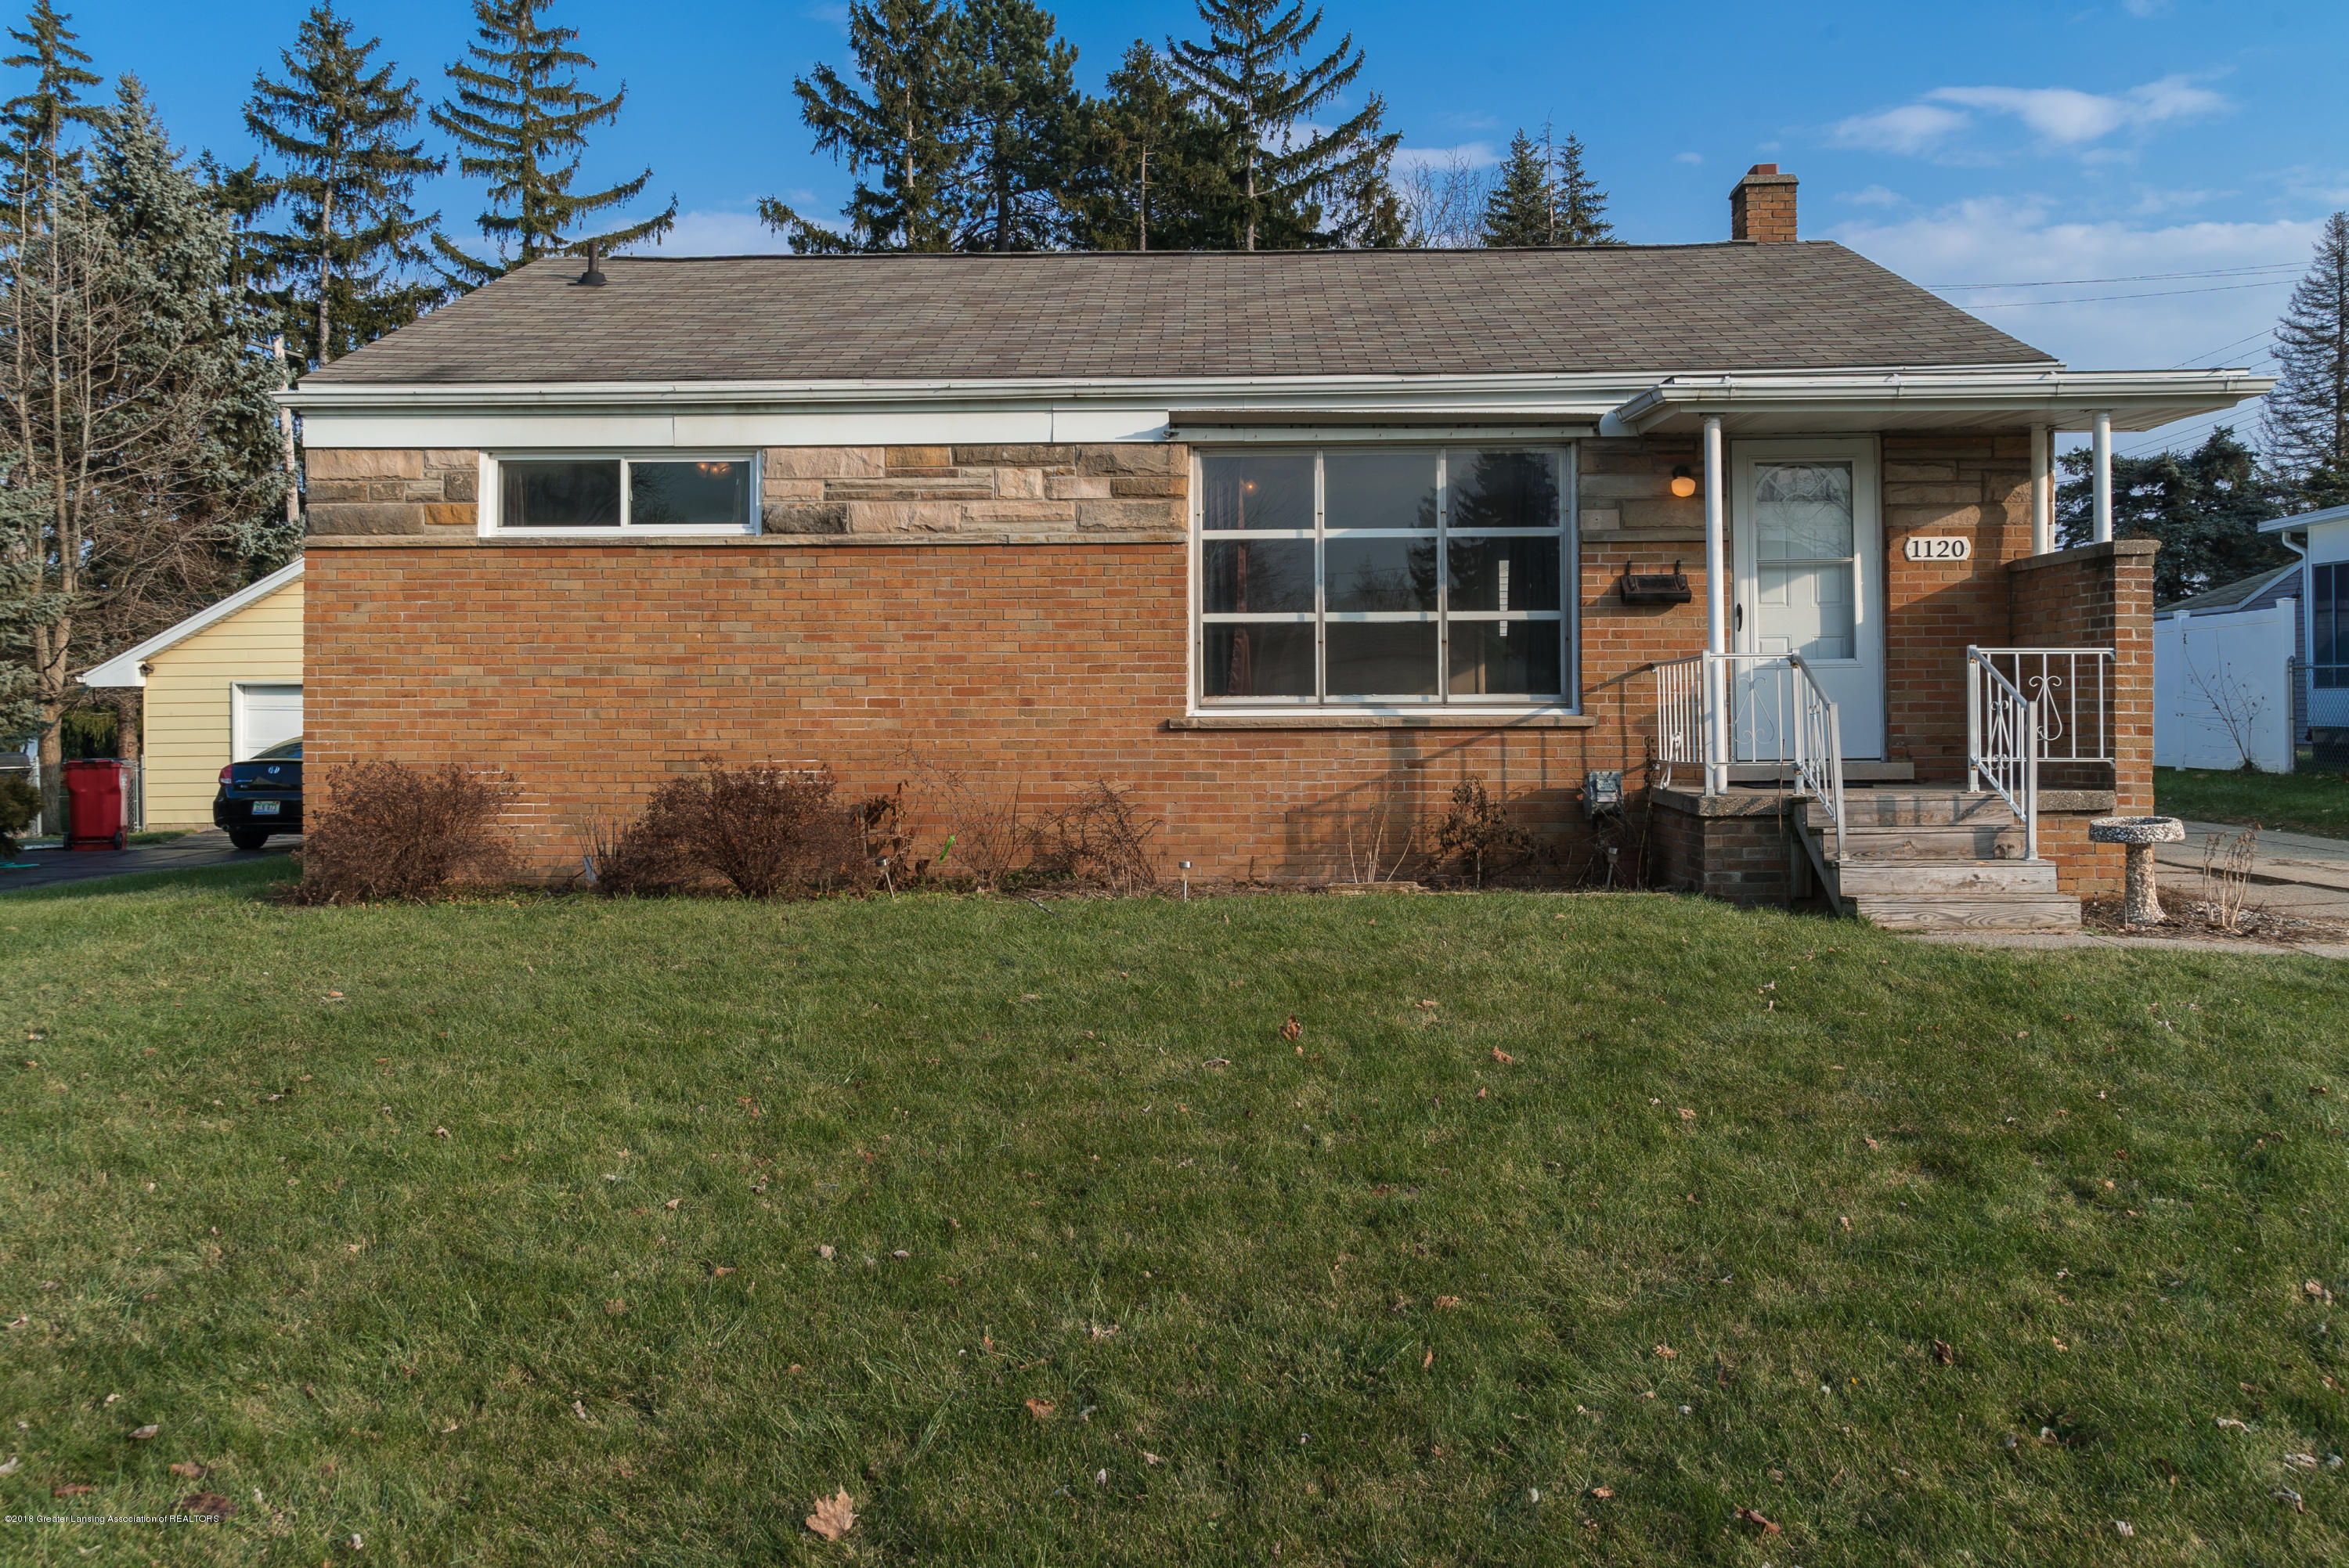 1120 Gould Rd - 1120 Gould1 - 1